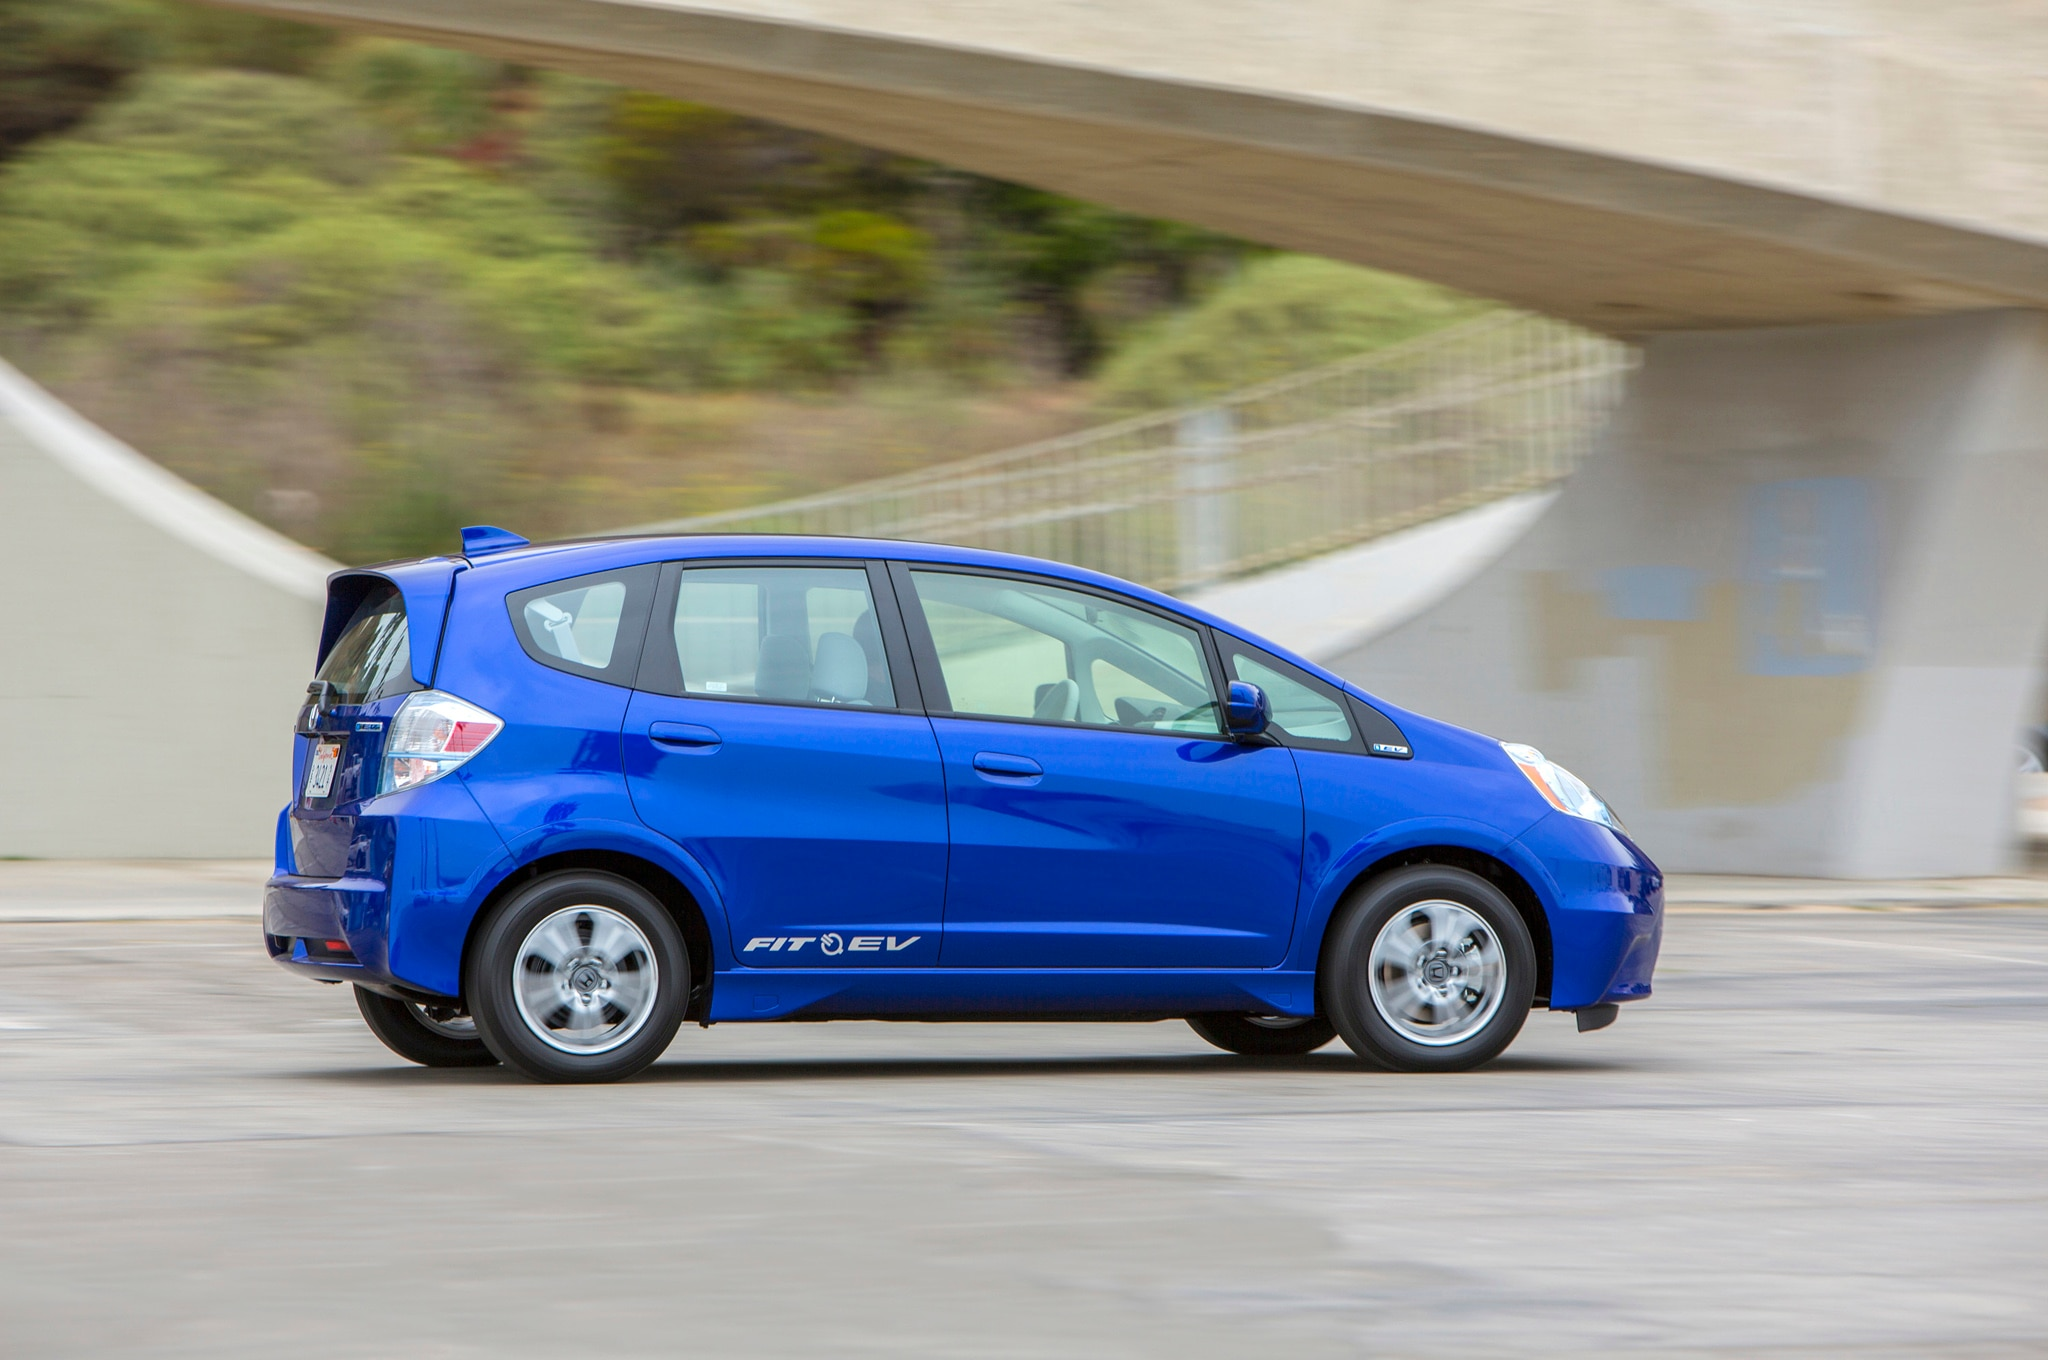 honda fit ev lease price dropped free insurance added